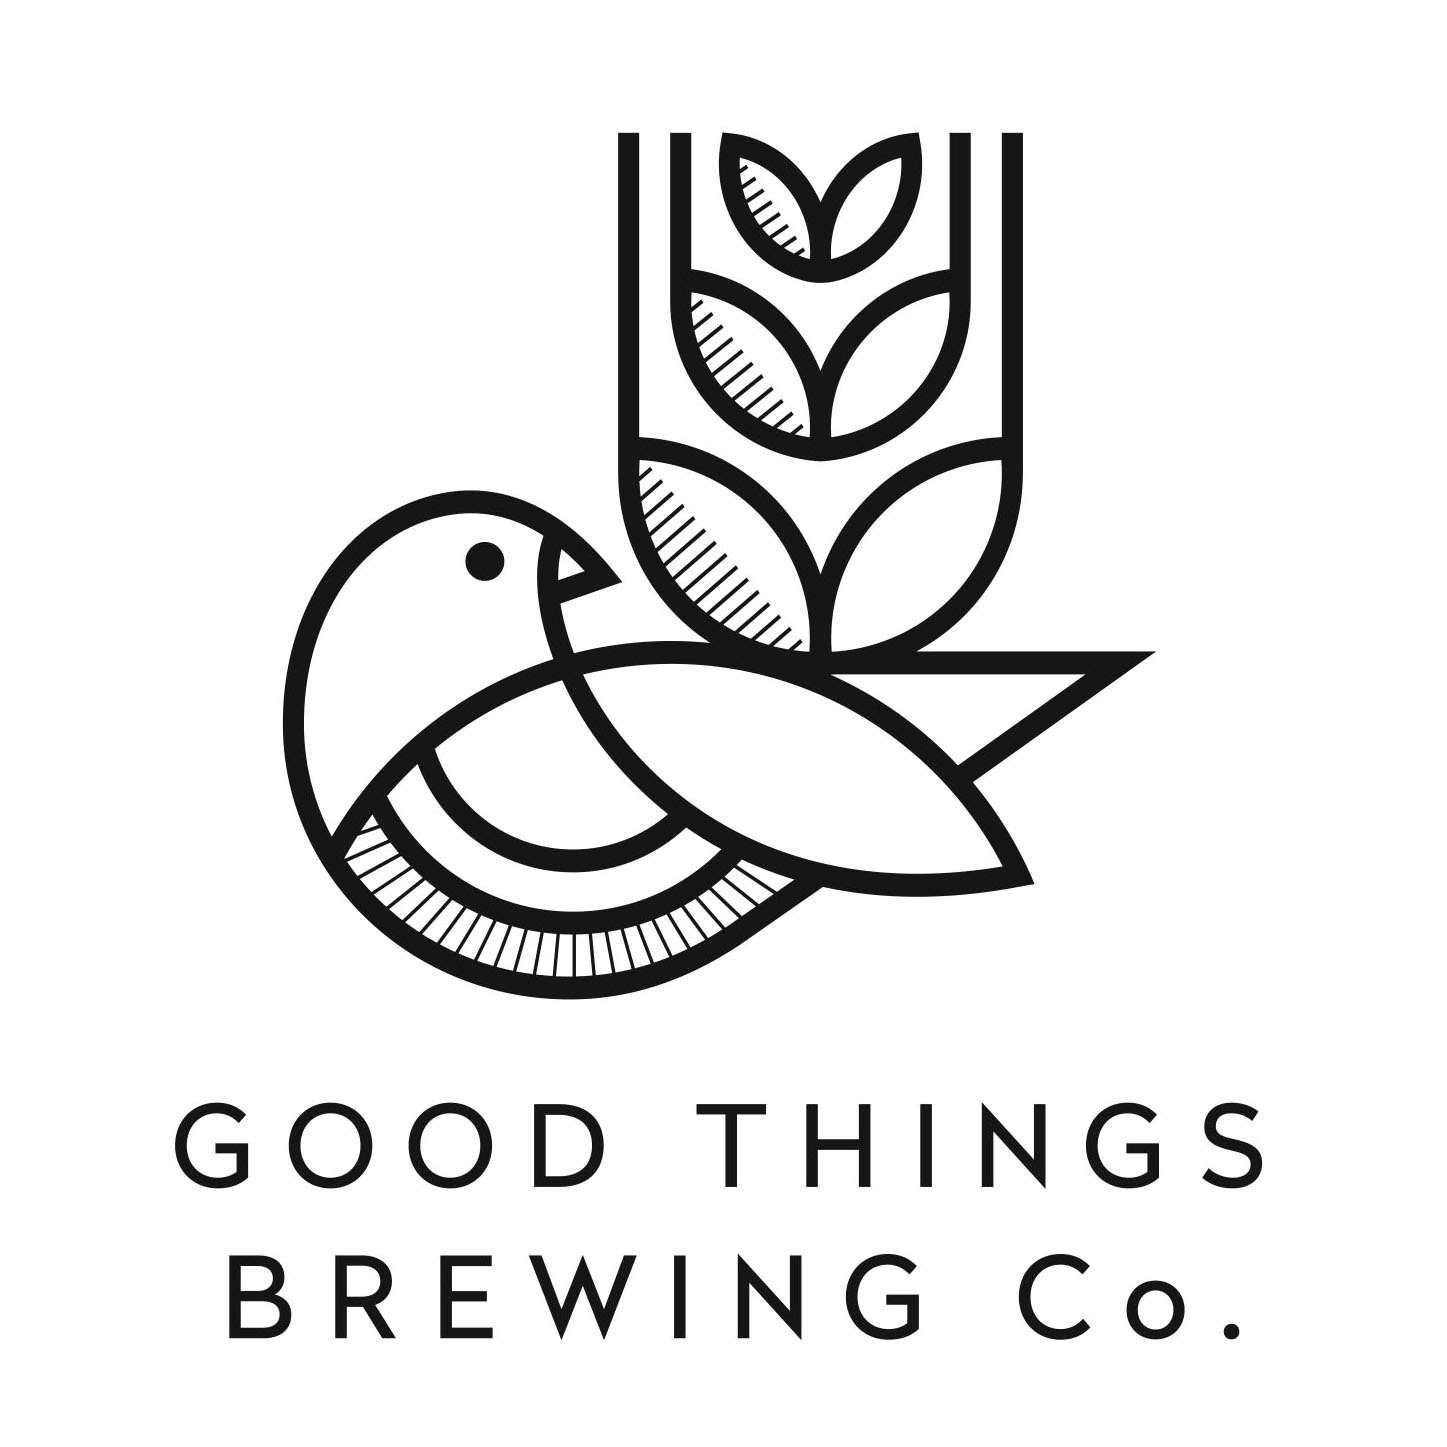 Good Things Brewing Co.